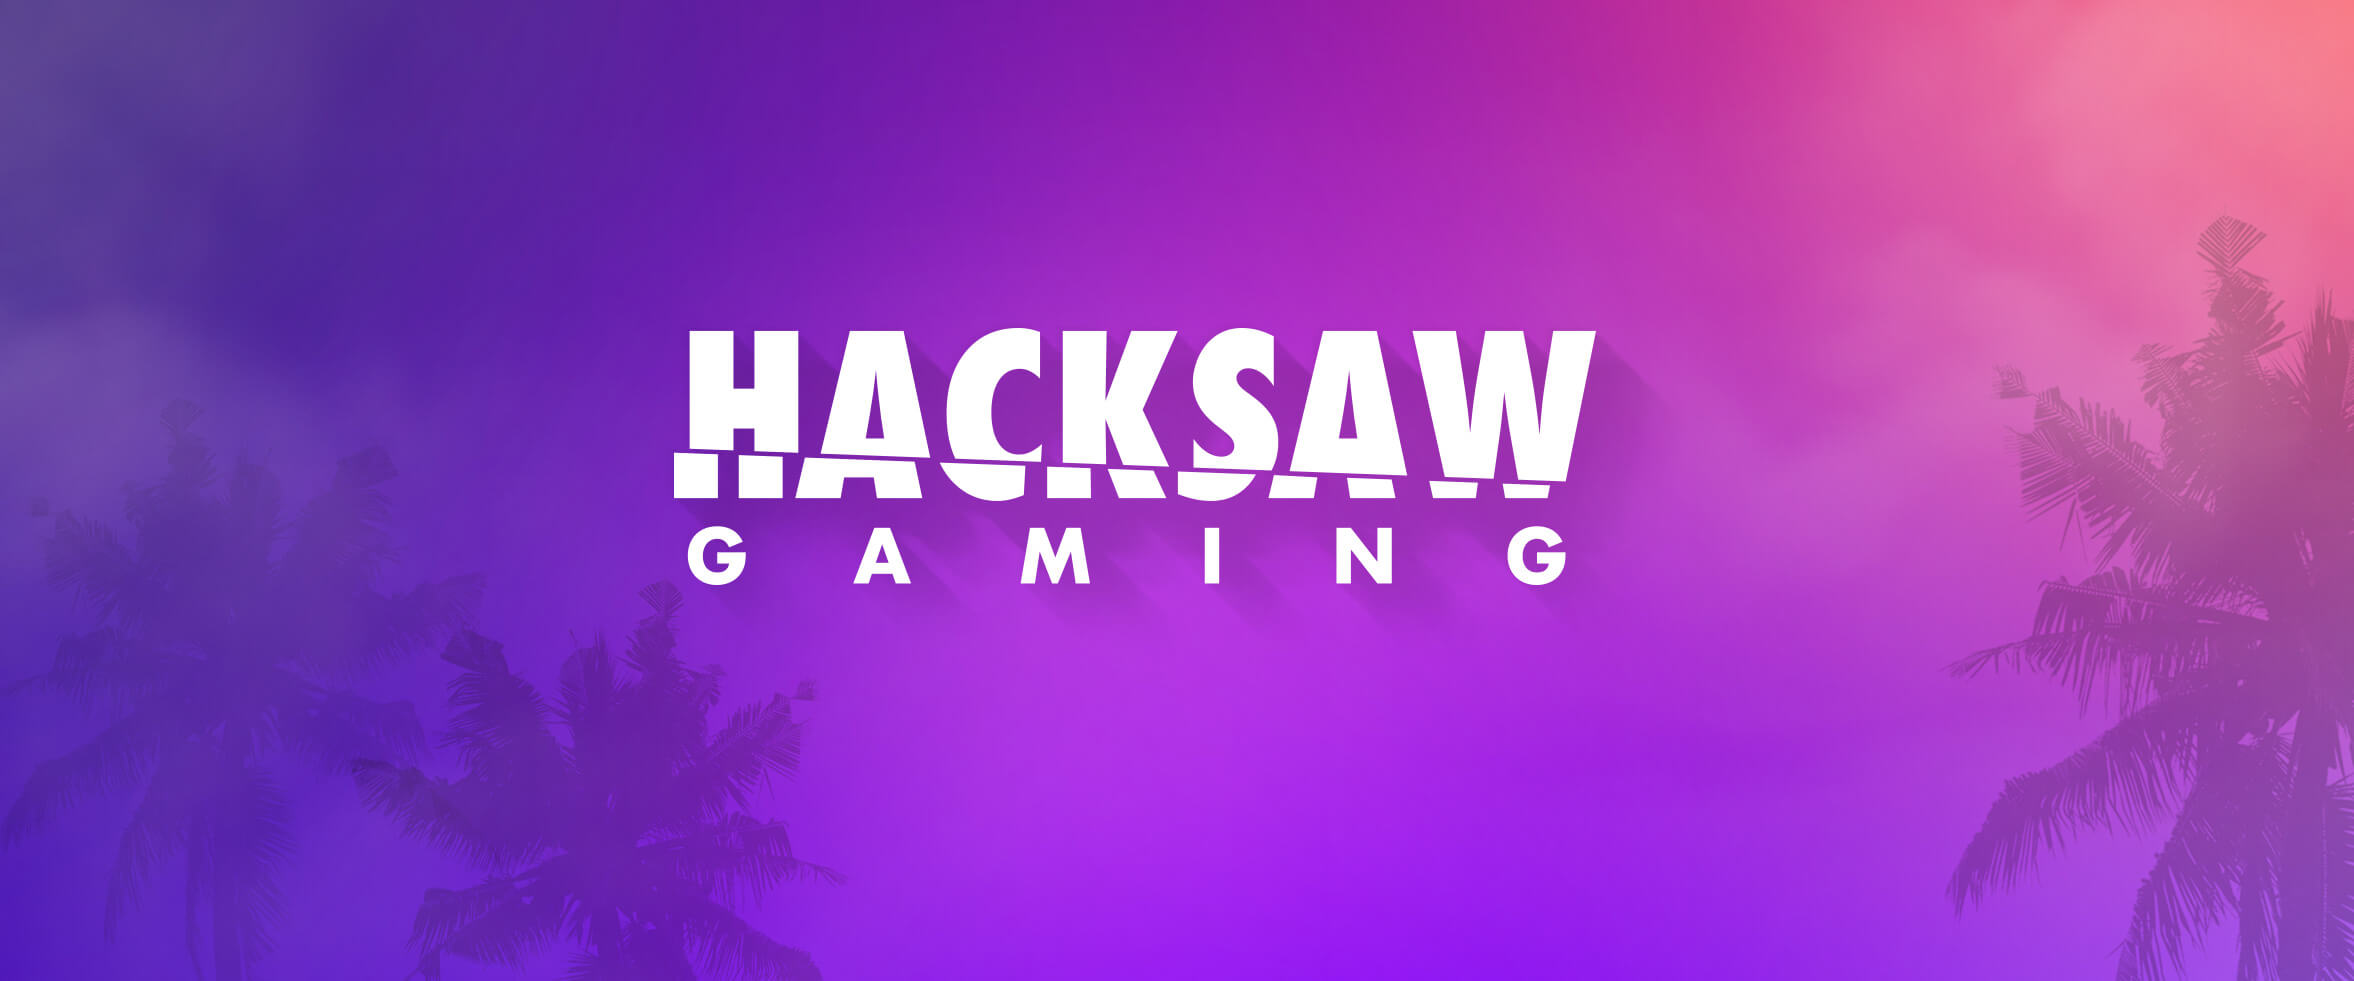 Scratch cards come to Wildz with Hacksaw Gaming